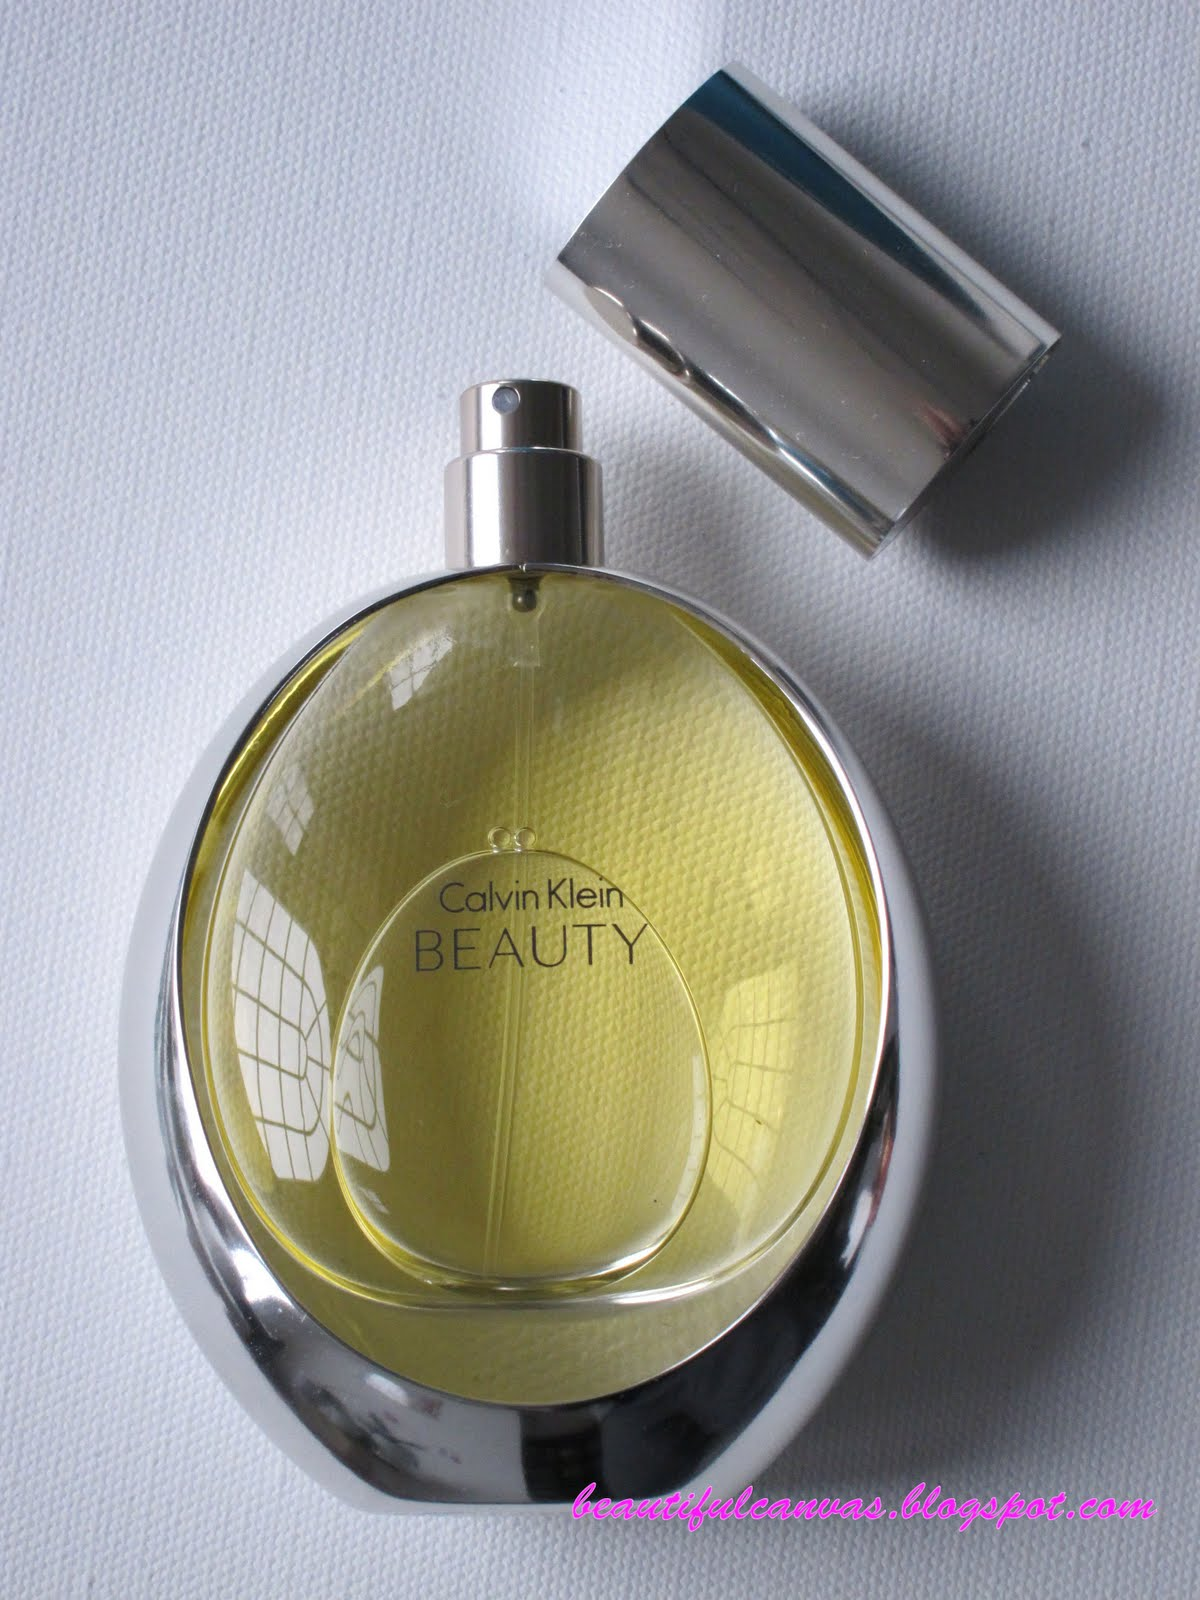 BEAUTIFUL CANVAS: Calvin Klein Beauty Fragrance Review